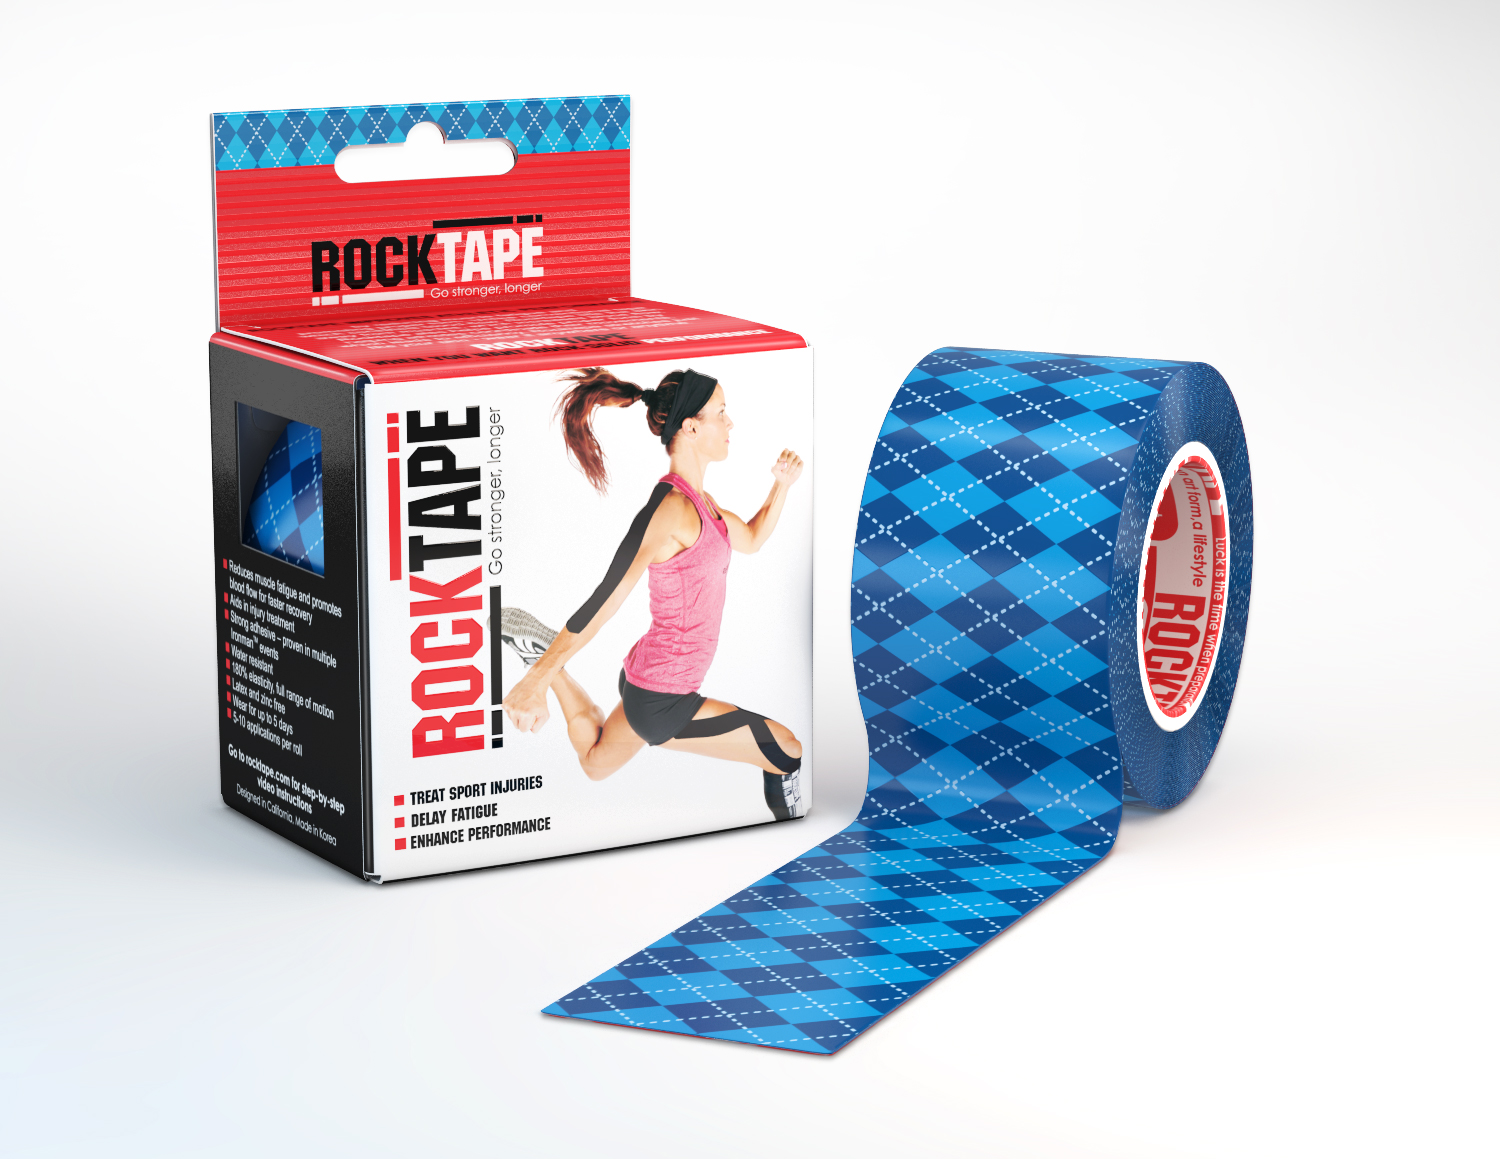 Rocktape: Kinesiology Tape Designed to Enhance Sports Performance and Recovery, MASSAGE Magazine